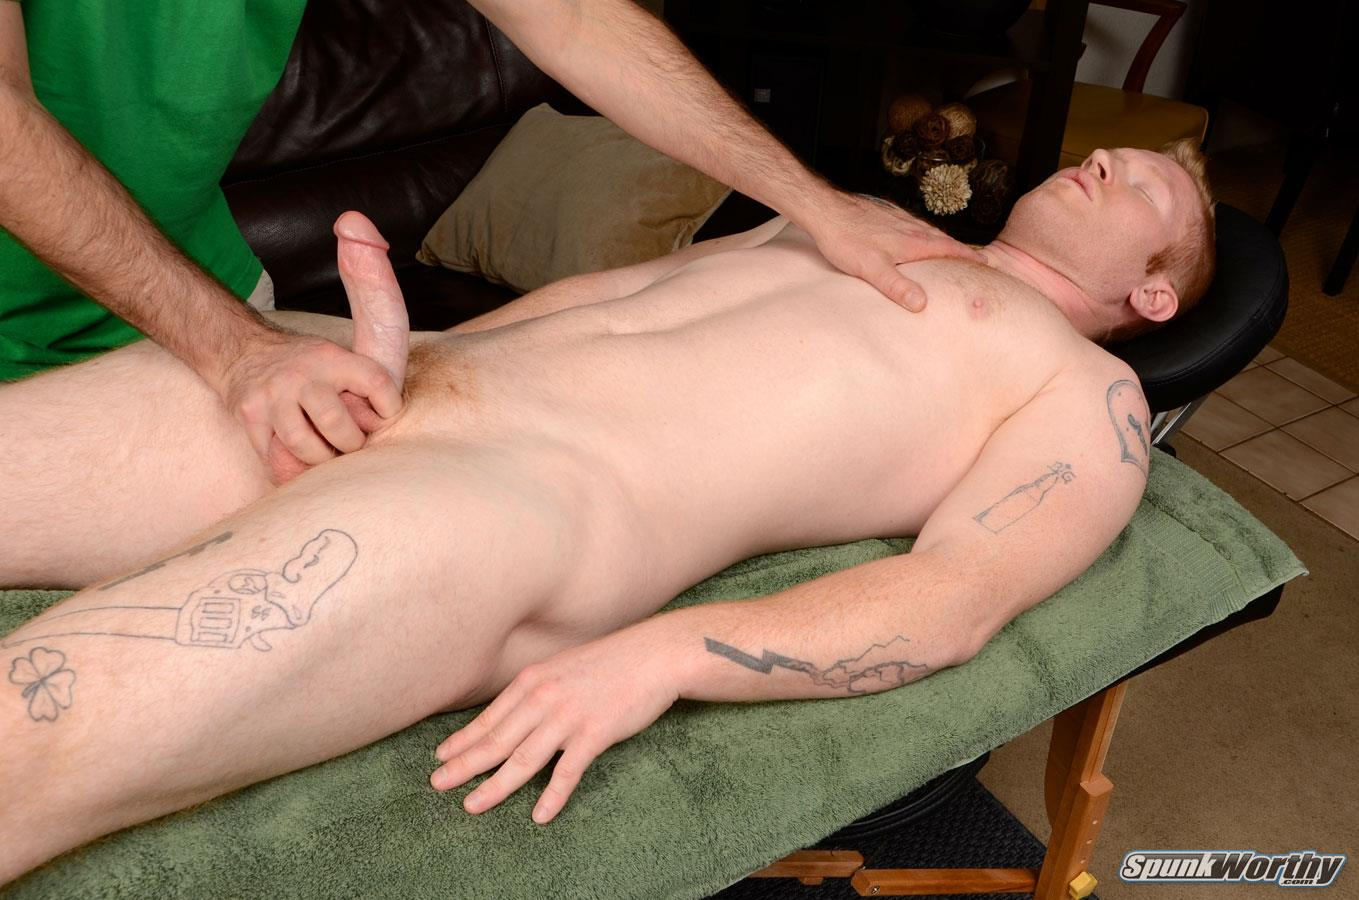 Spunkworthy-Perry-Straight-Redhead-Gets-Massage-With-Happy-Ending-Amateur-Gay-Porn-15 Amateur Straight Redhead Gets A Massage With A Happy Ending